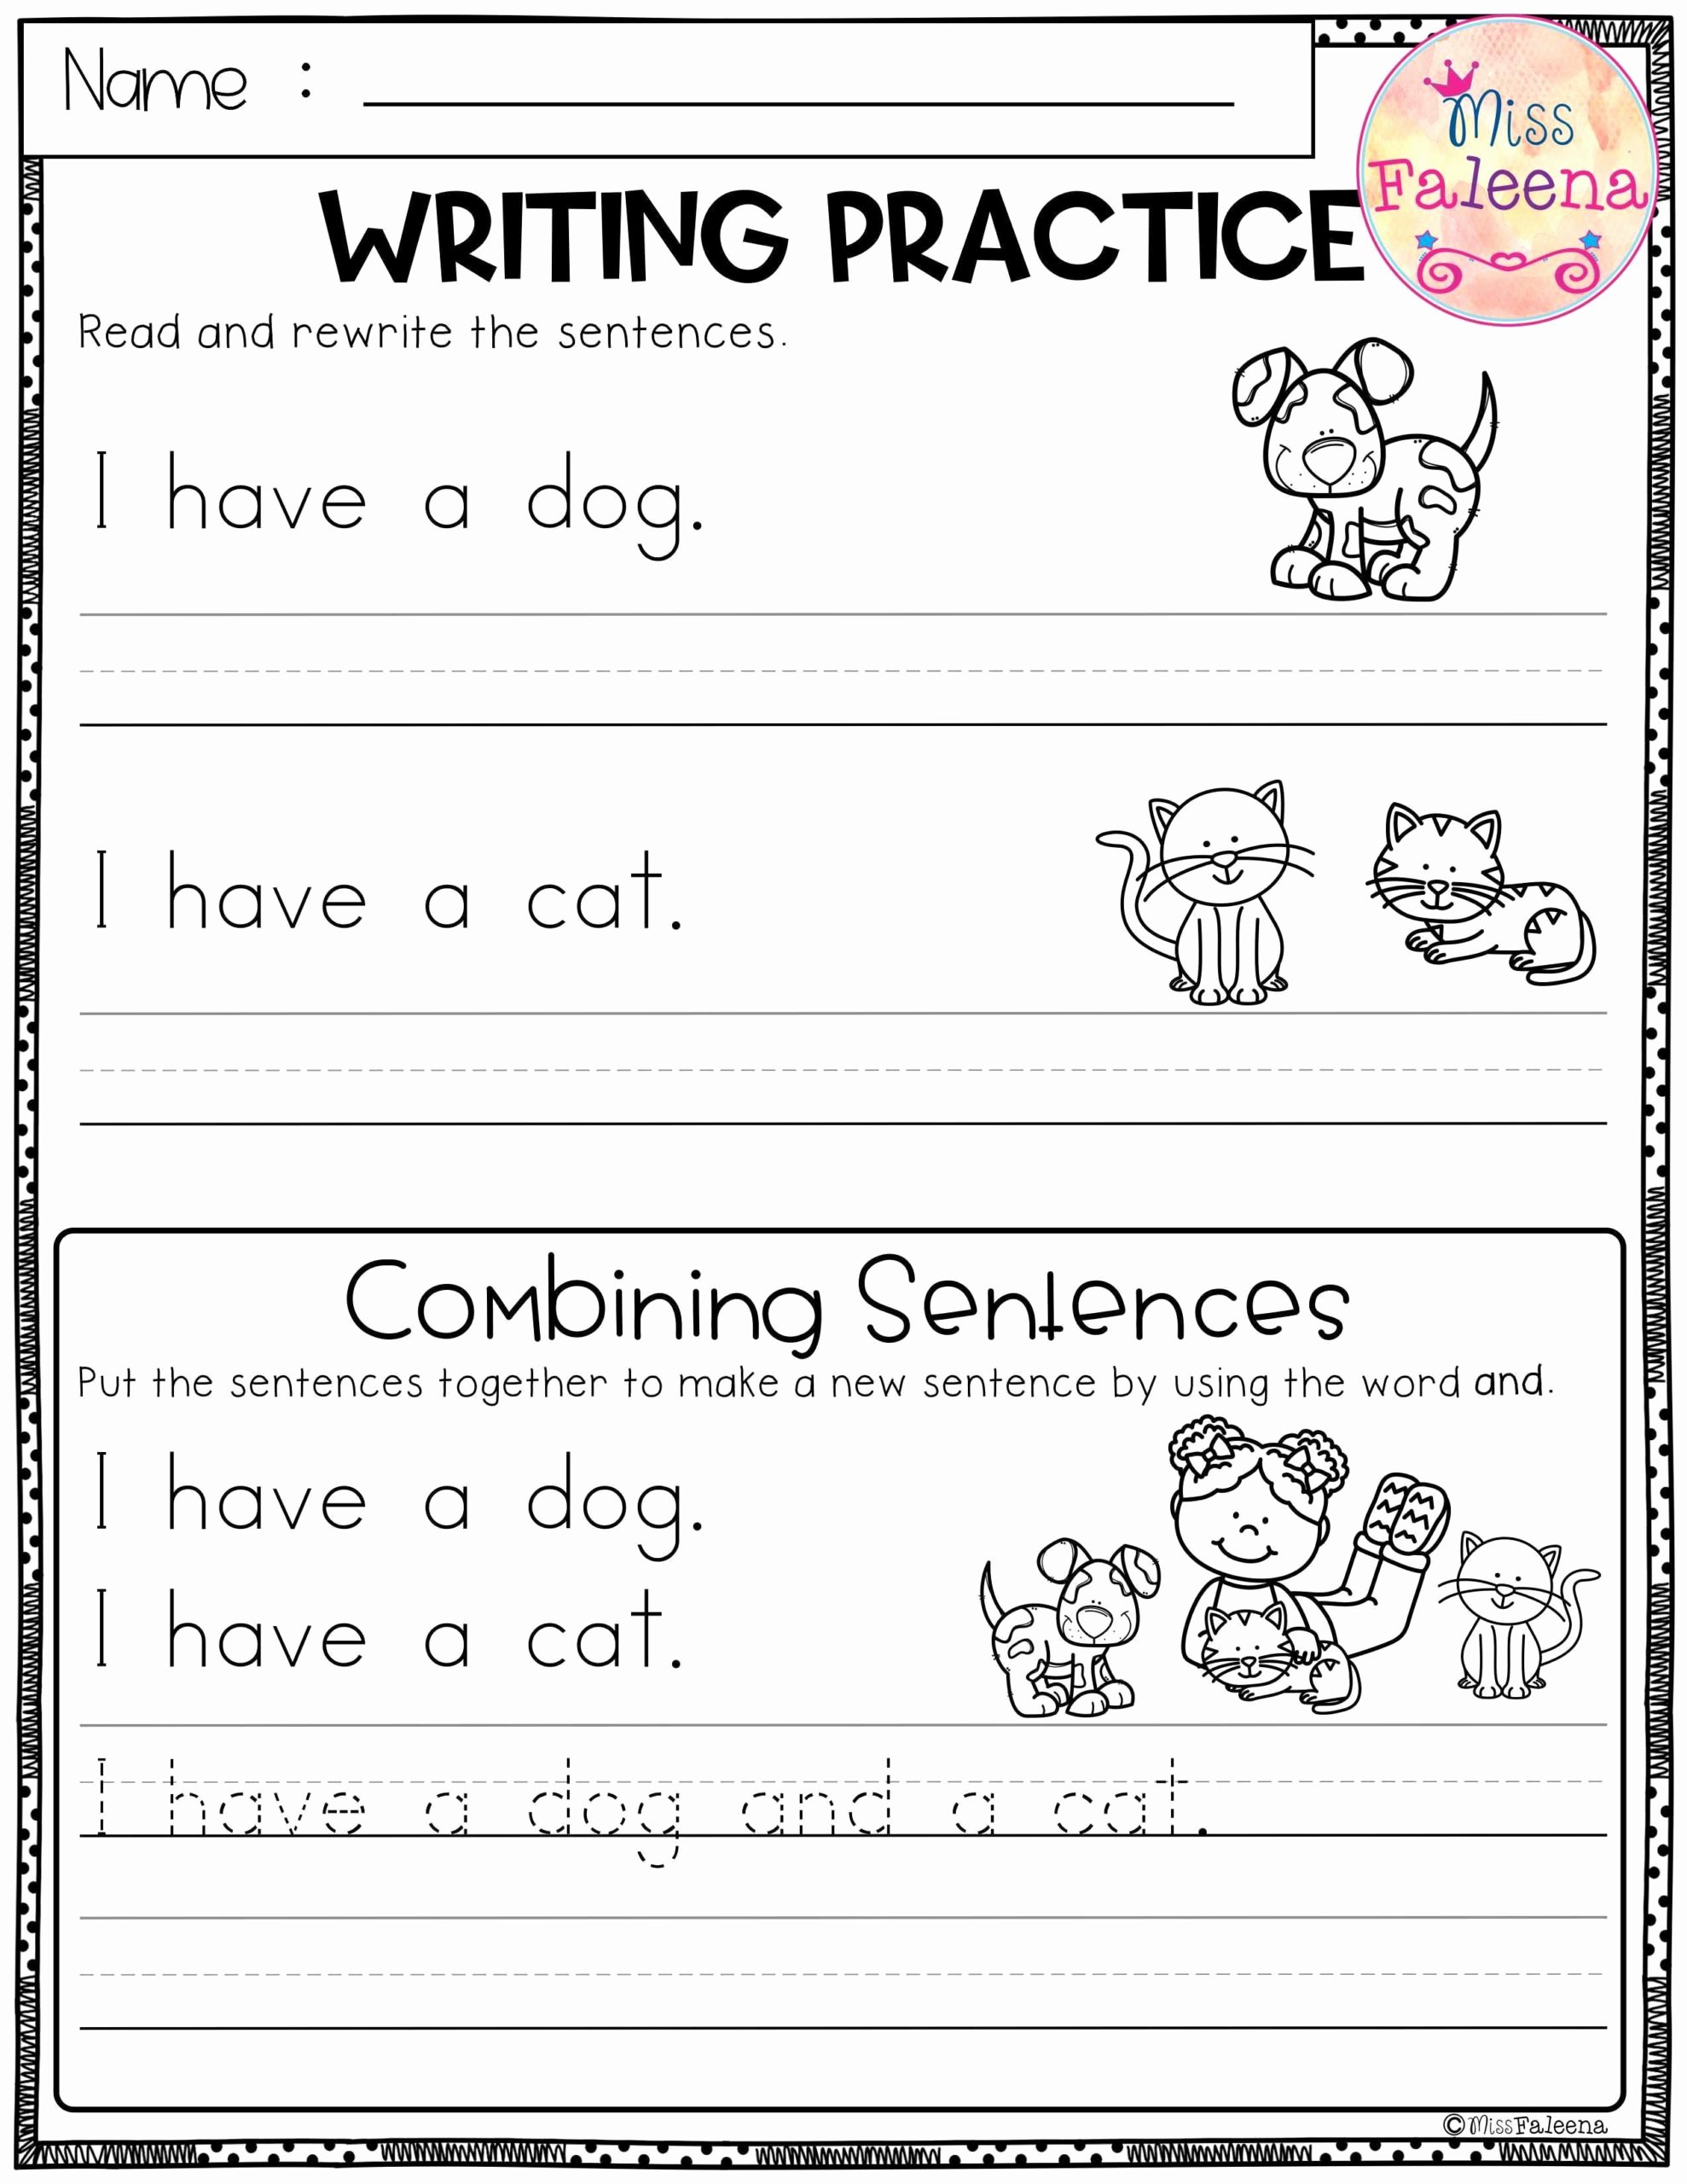 Free Printable Sentence Writing Worksheets top Free Writing Practice Bining Sentences Sentence